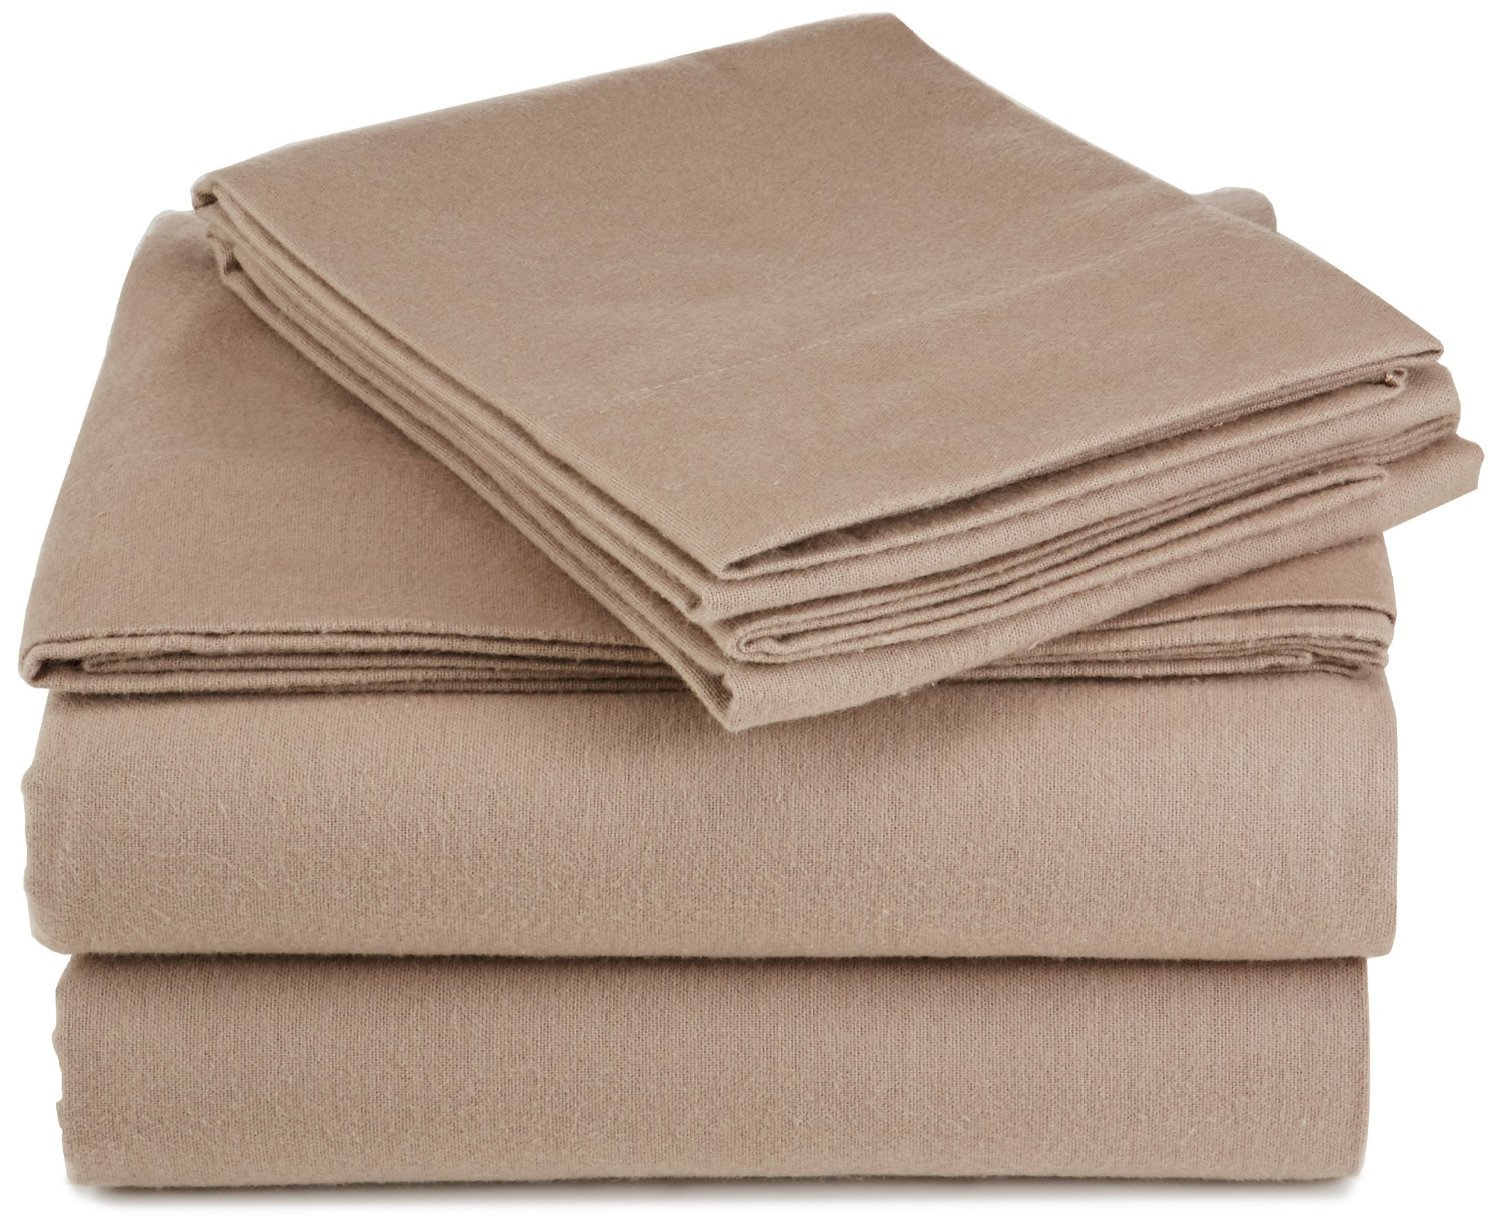 Pinzon Lightweight Cotton Flannel Sheet Set - California King, New Taupe